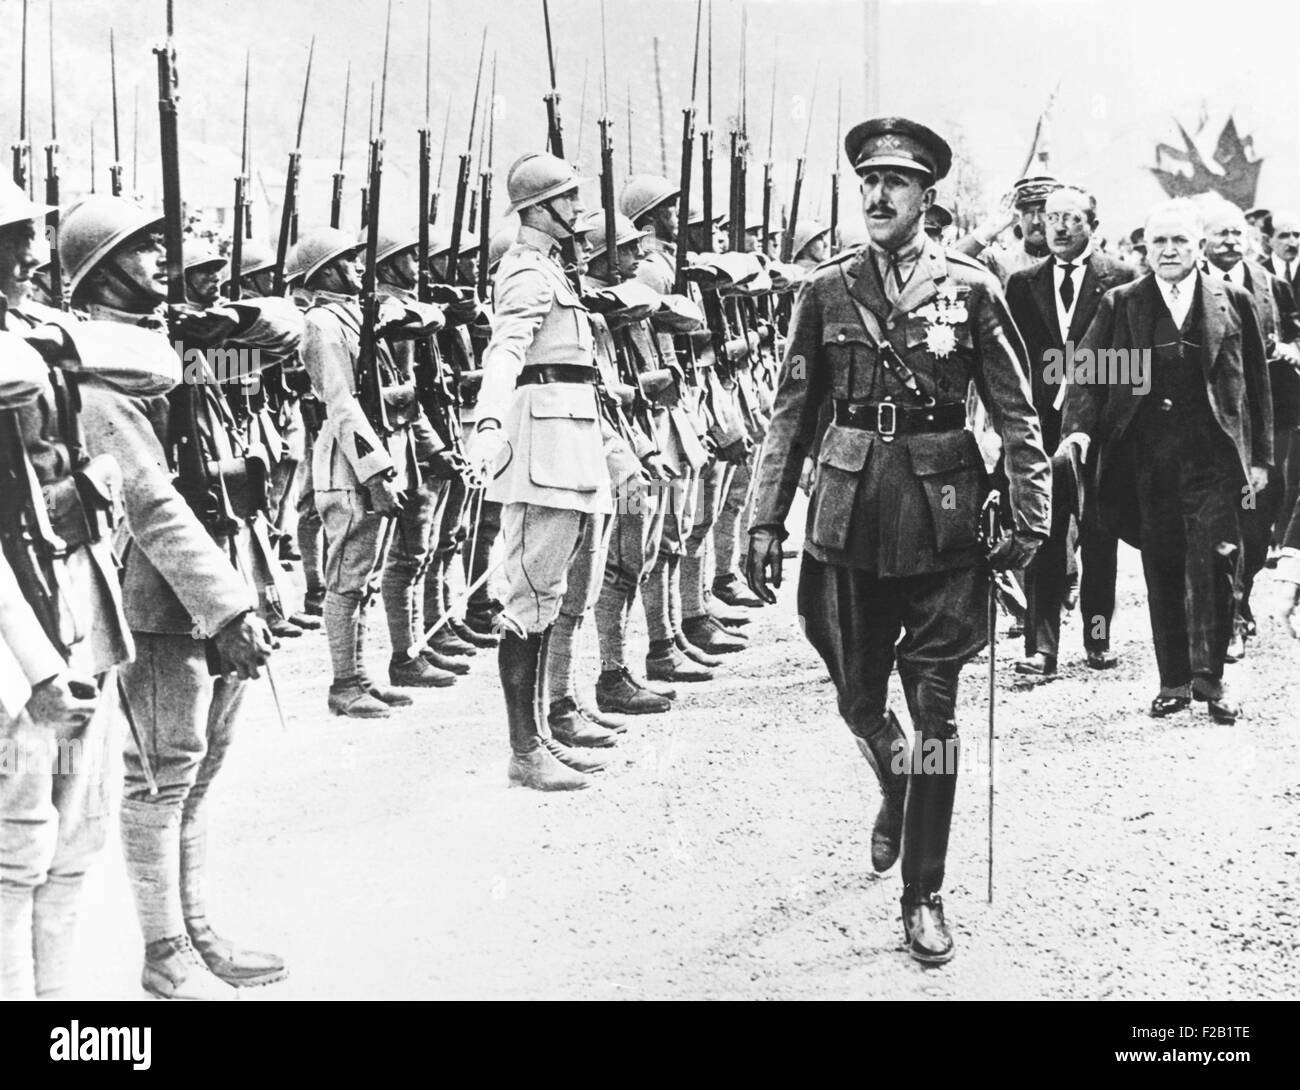 Alfonso VIII, King of Spain, reviewing French Troops, July 1928. Behind him at left is French Prime Minister Gaston - Stock Image